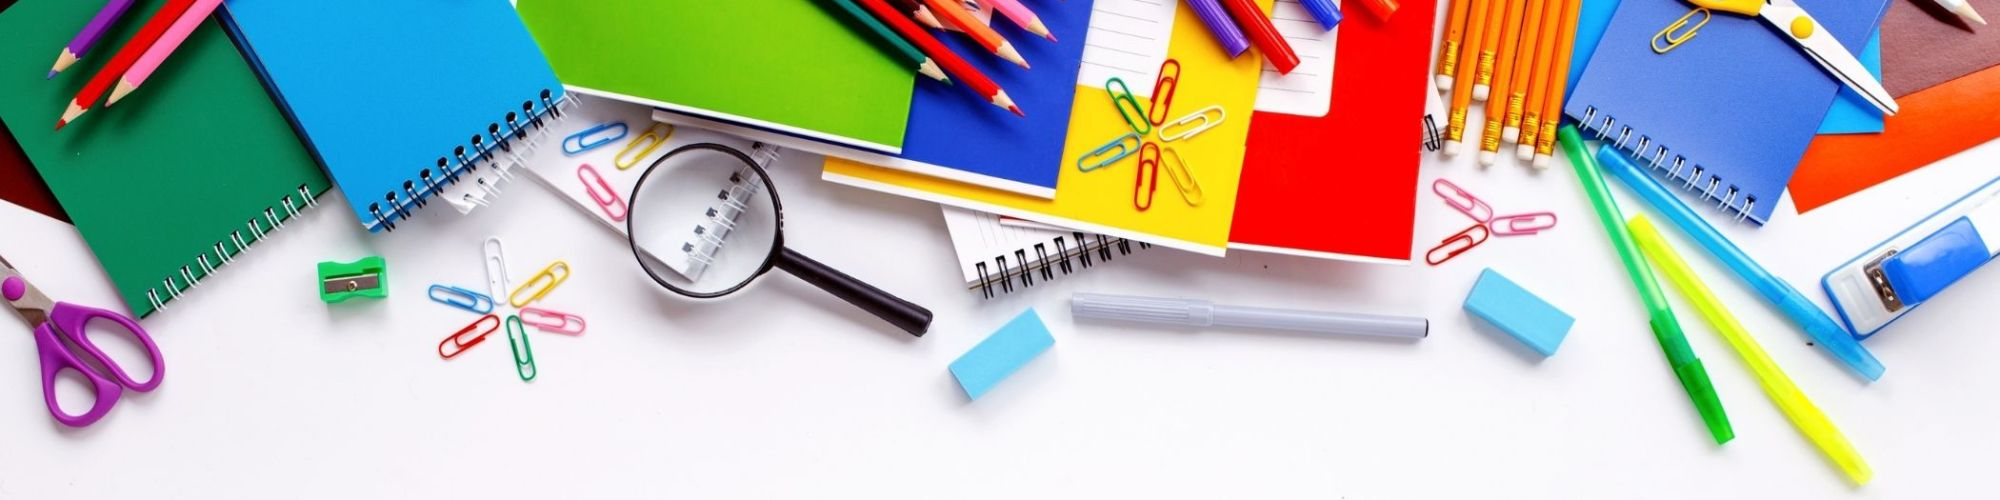 School Supplies scattered on a white desk background